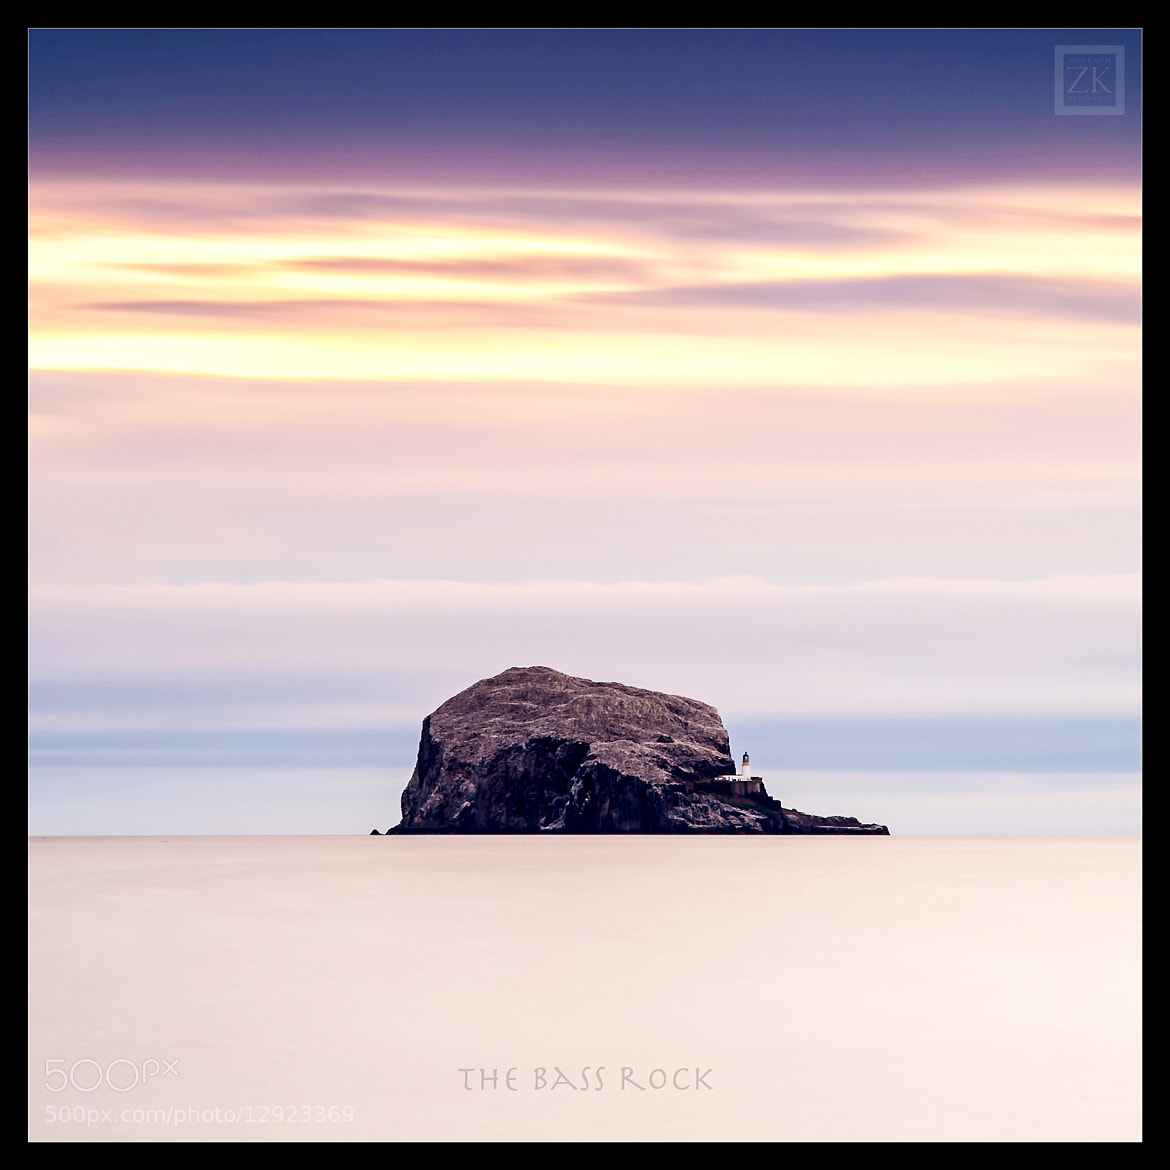 Photograph The Bass Rock by Zain Kapasi on 500px